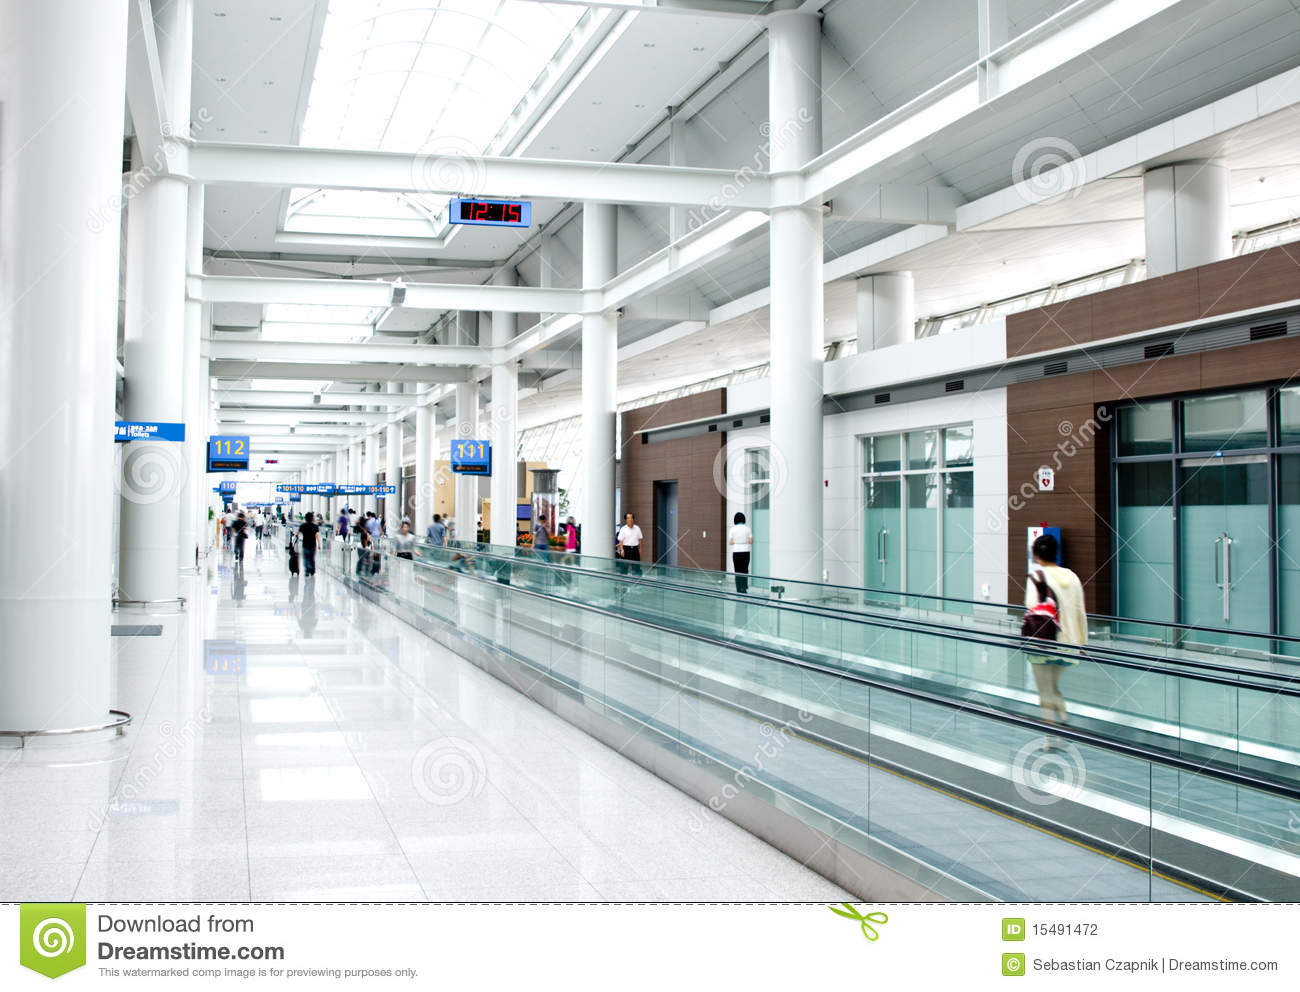 What Is The Airport Code For Seoul